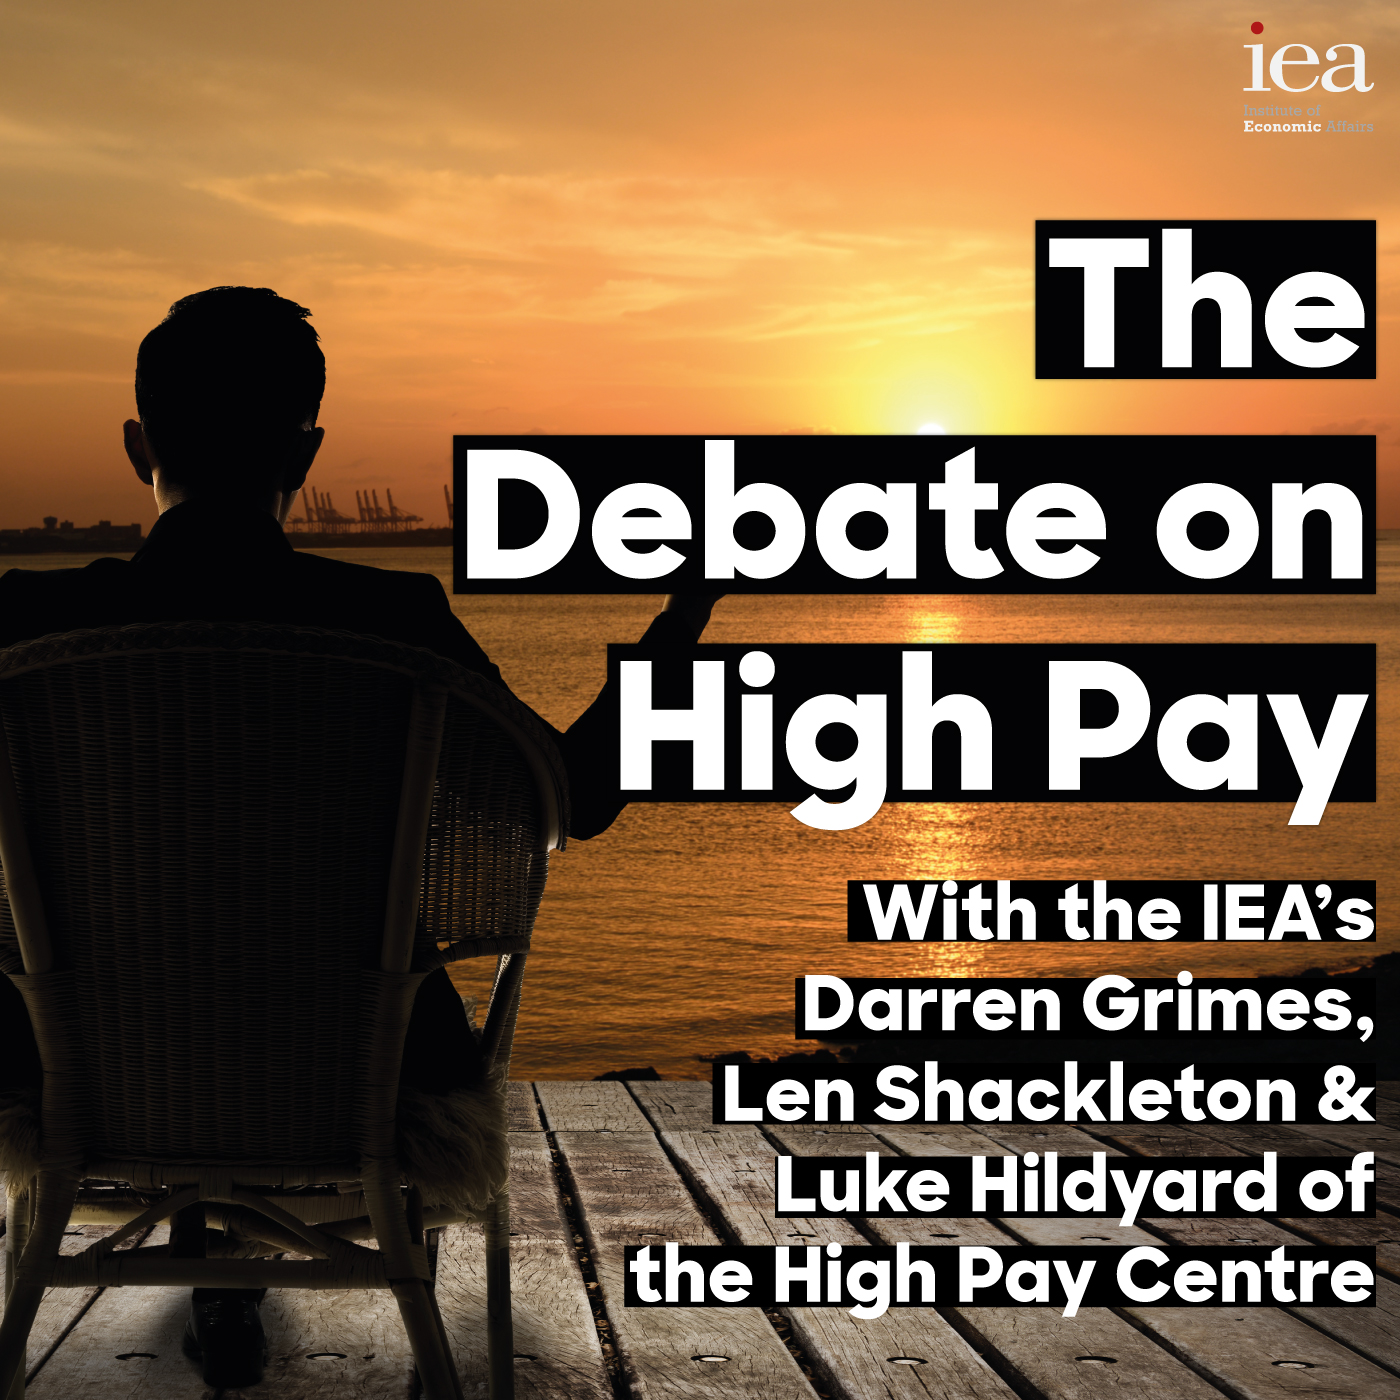 The debate on high pay